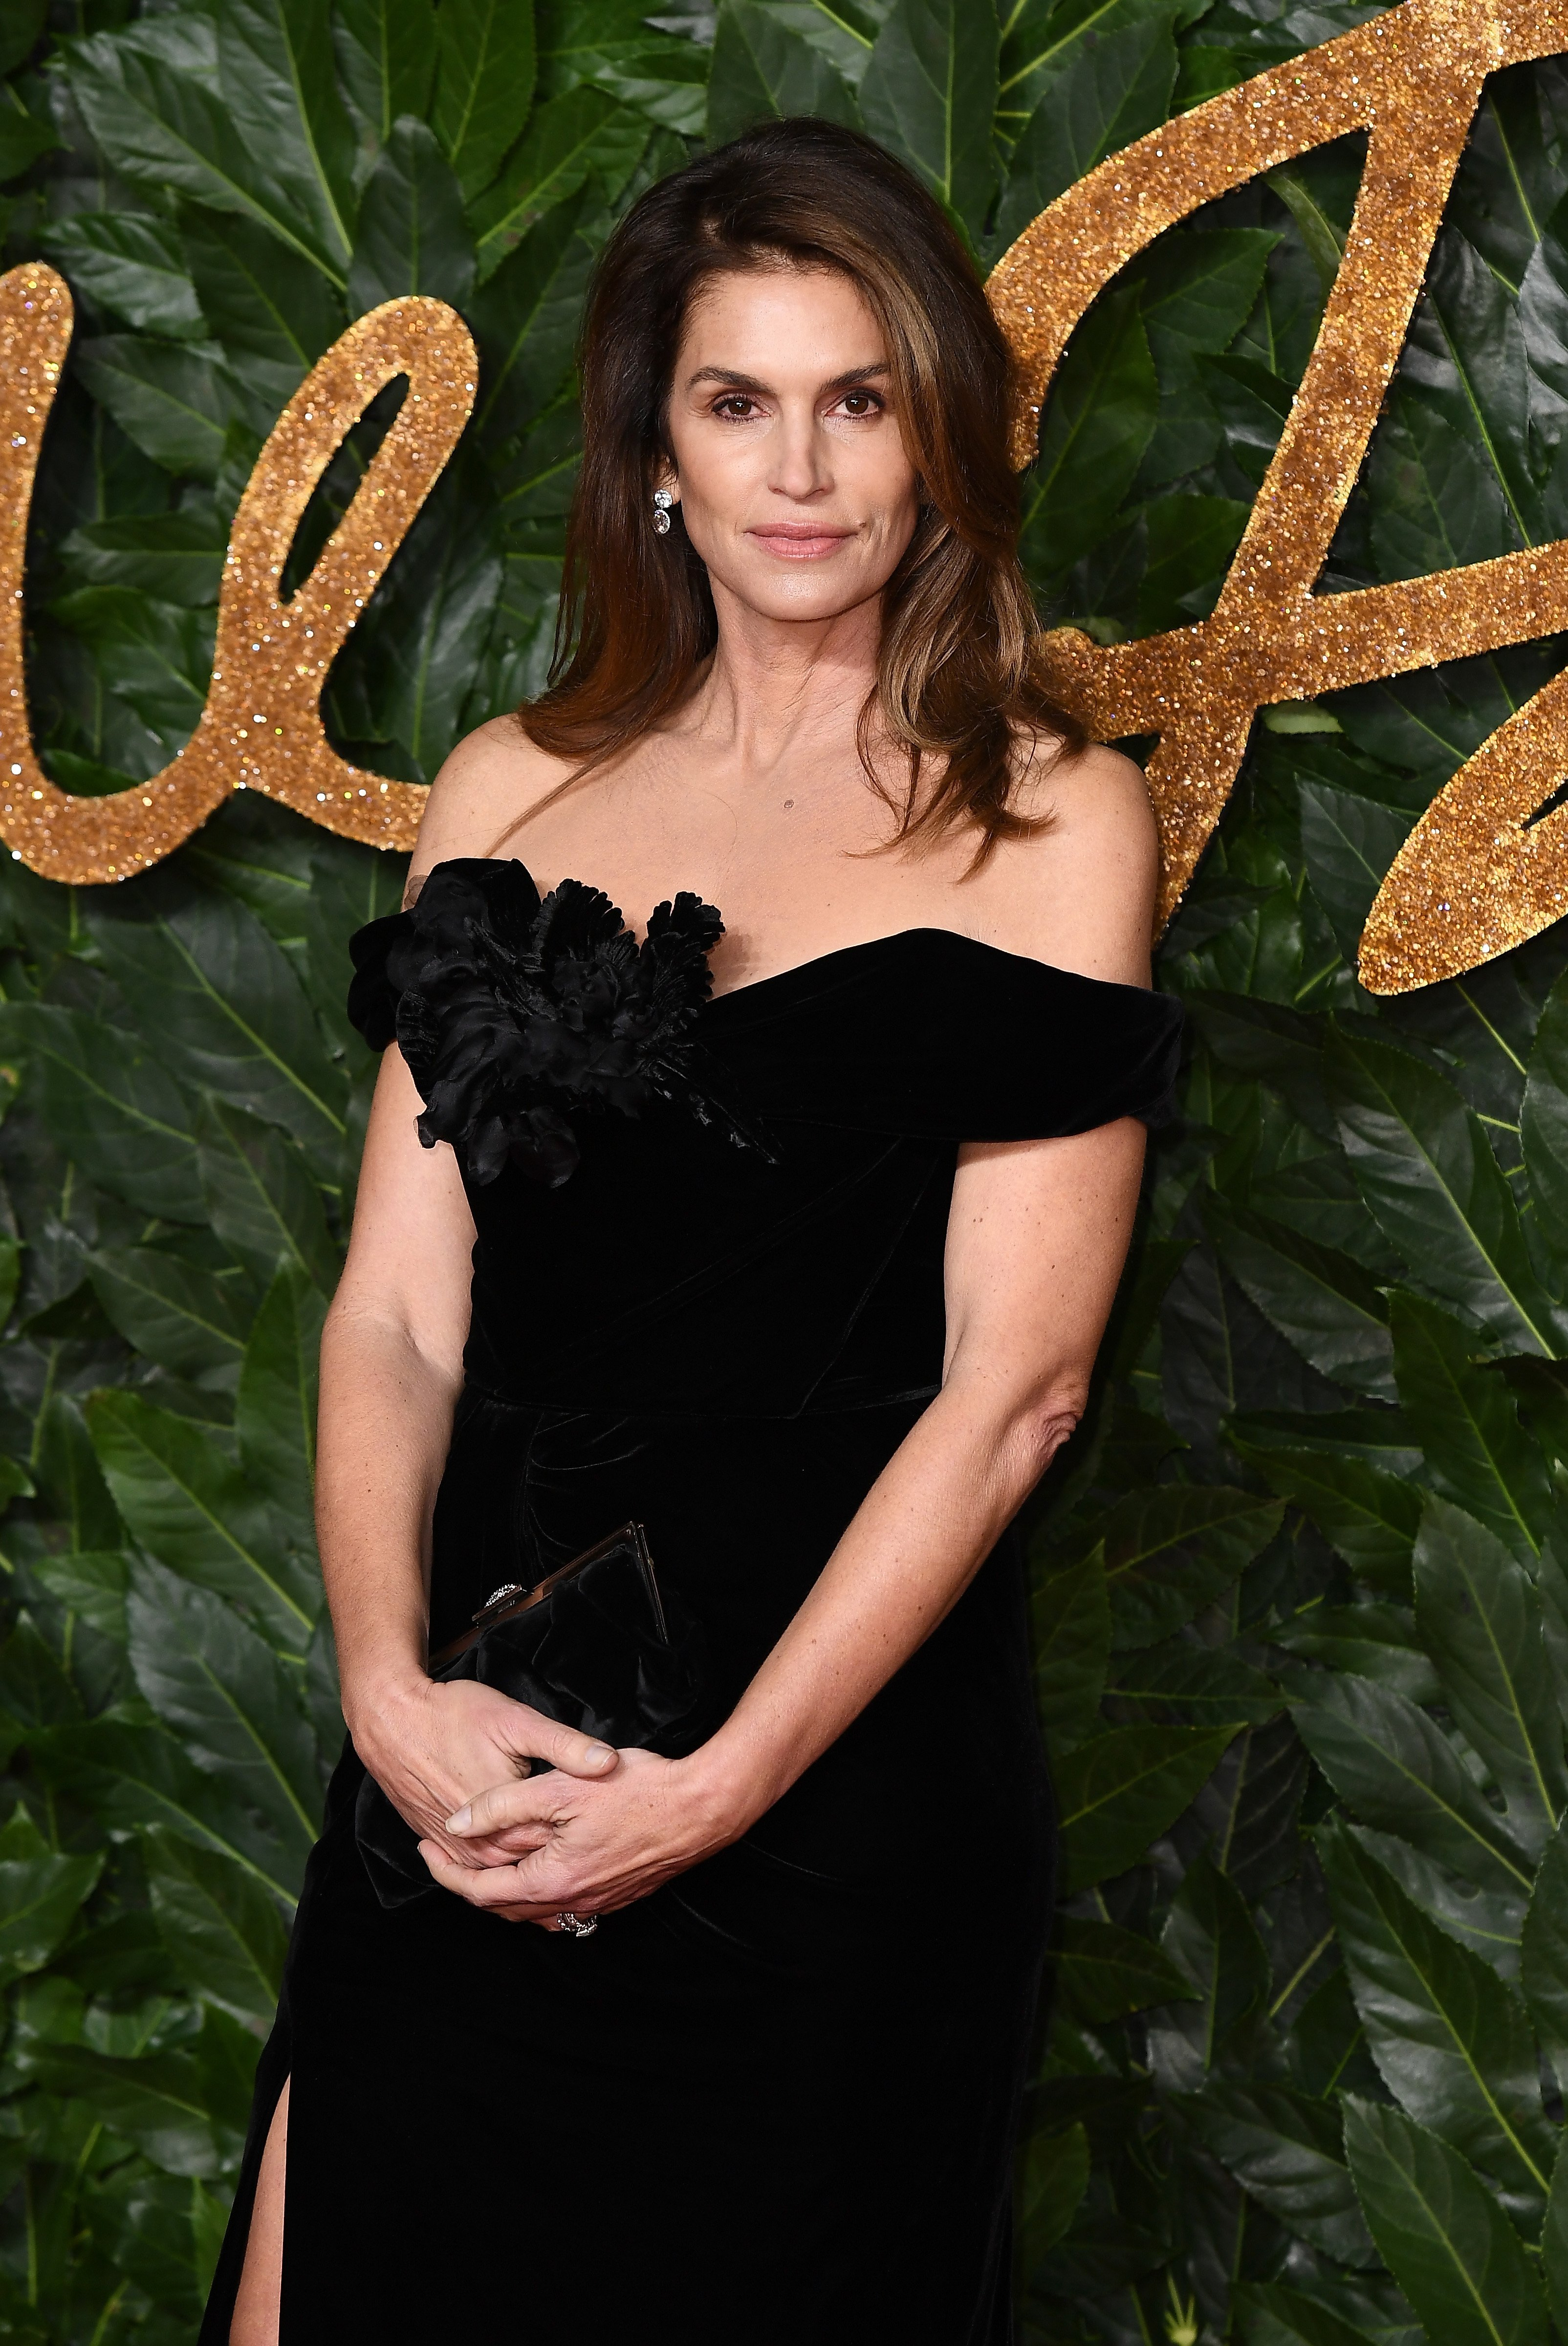 Cindy Crawford arrives at The Fashion Awards 2018 In Partnership With Swarovski at Royal Albert Hall on December 10, 2018, in London, England. | Source: Getty Images.